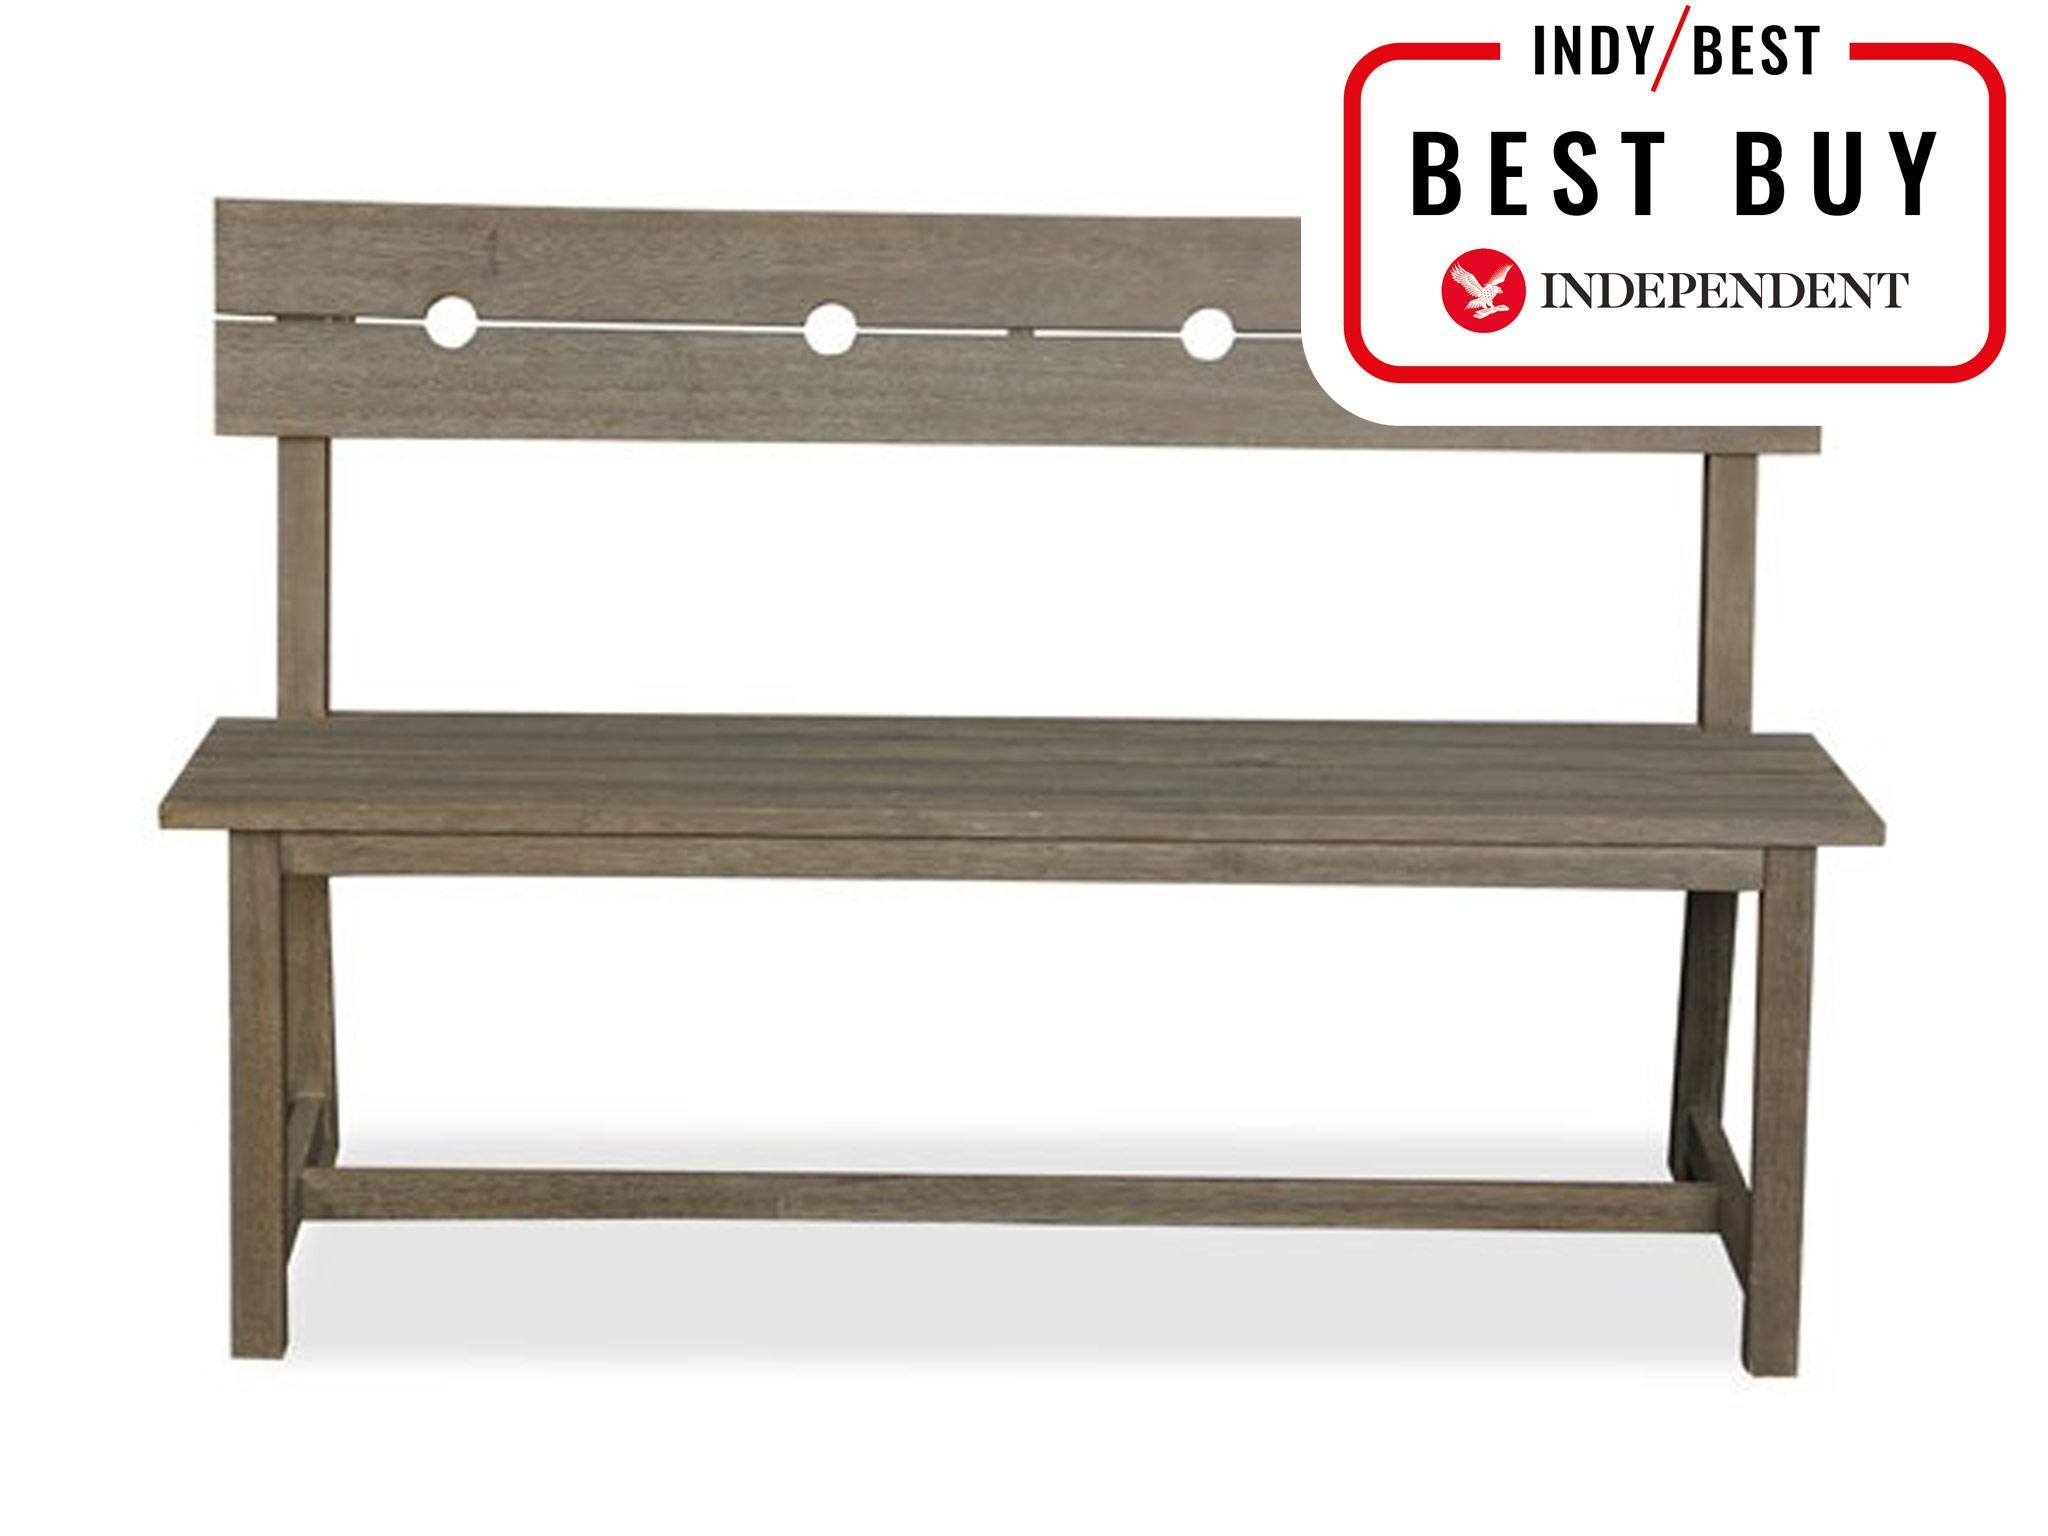 Magnificent 10 Best Garden Benches The Independent Machost Co Dining Chair Design Ideas Machostcouk